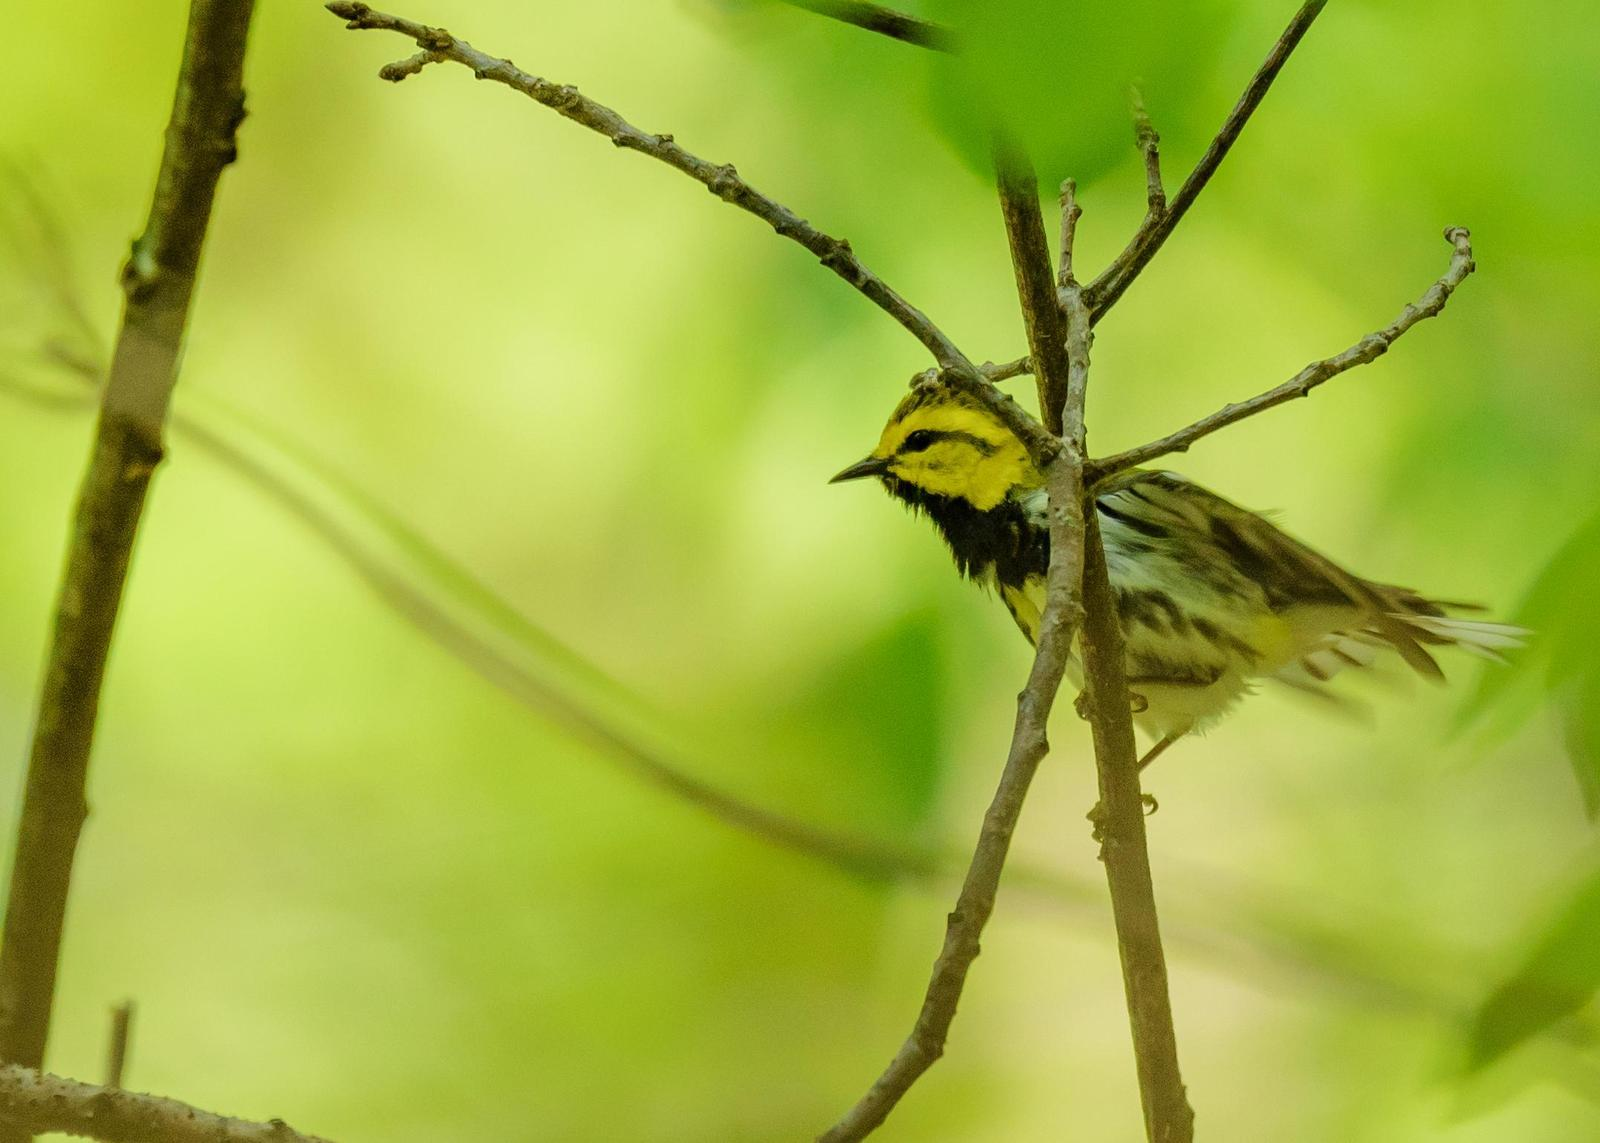 Black-throated Green Warbler Photo by Keshava Mysore